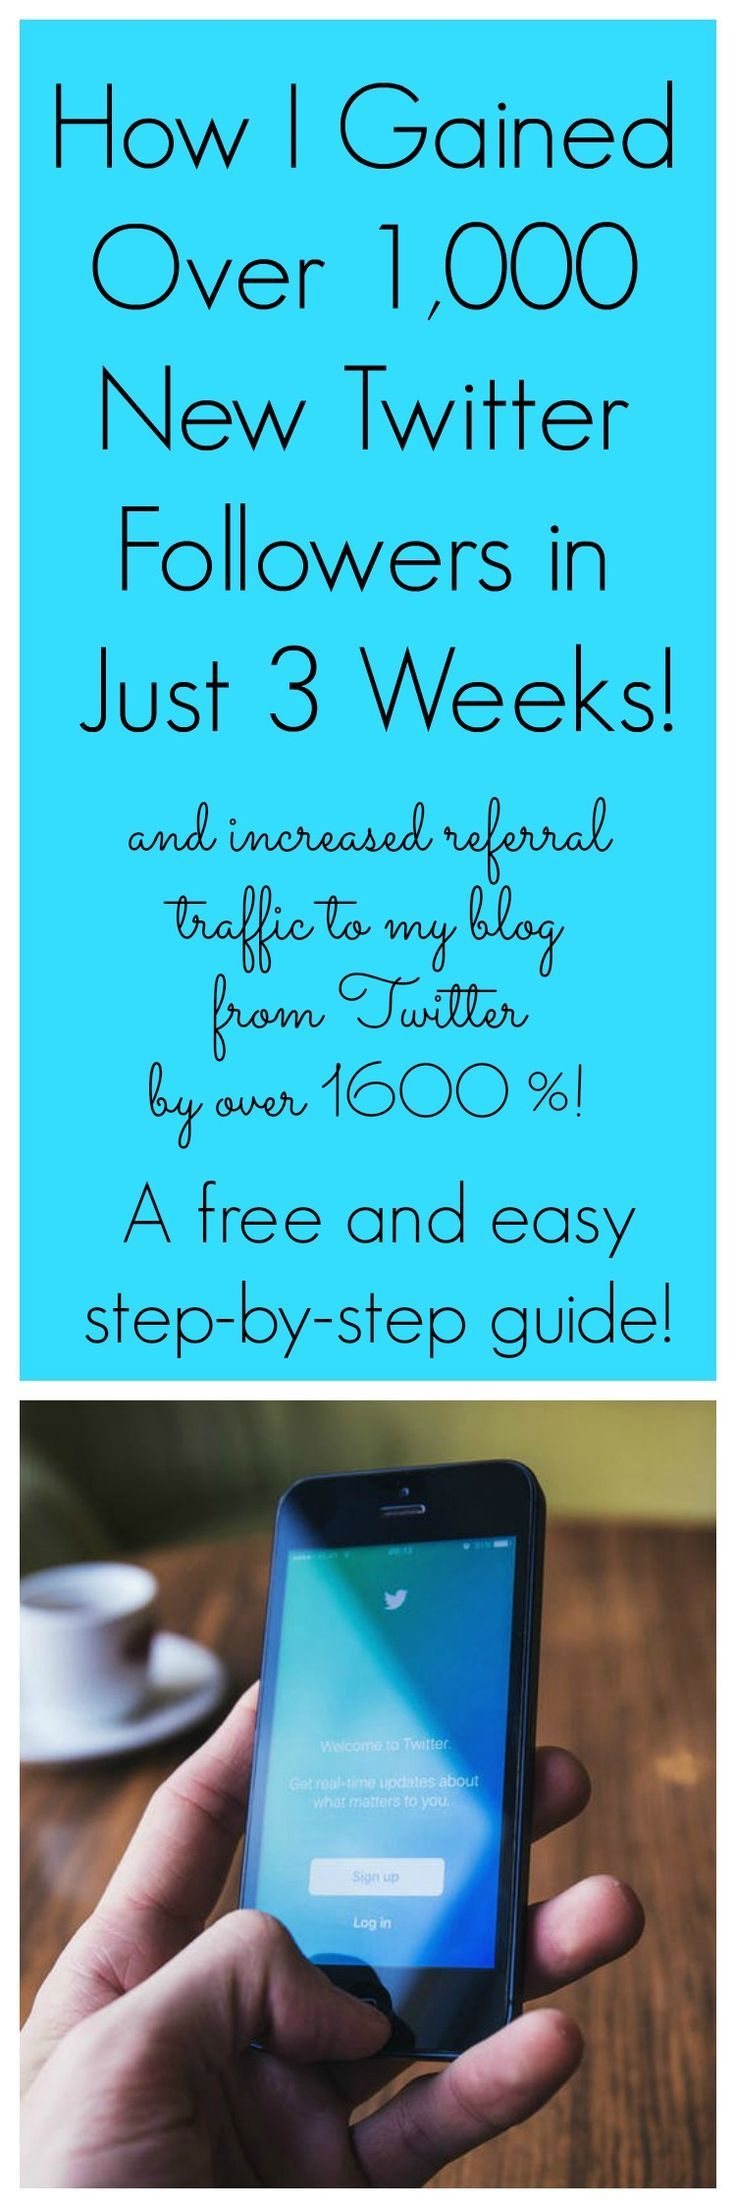 How I Gained Over 1,000 New Twitter Followers in Just 3